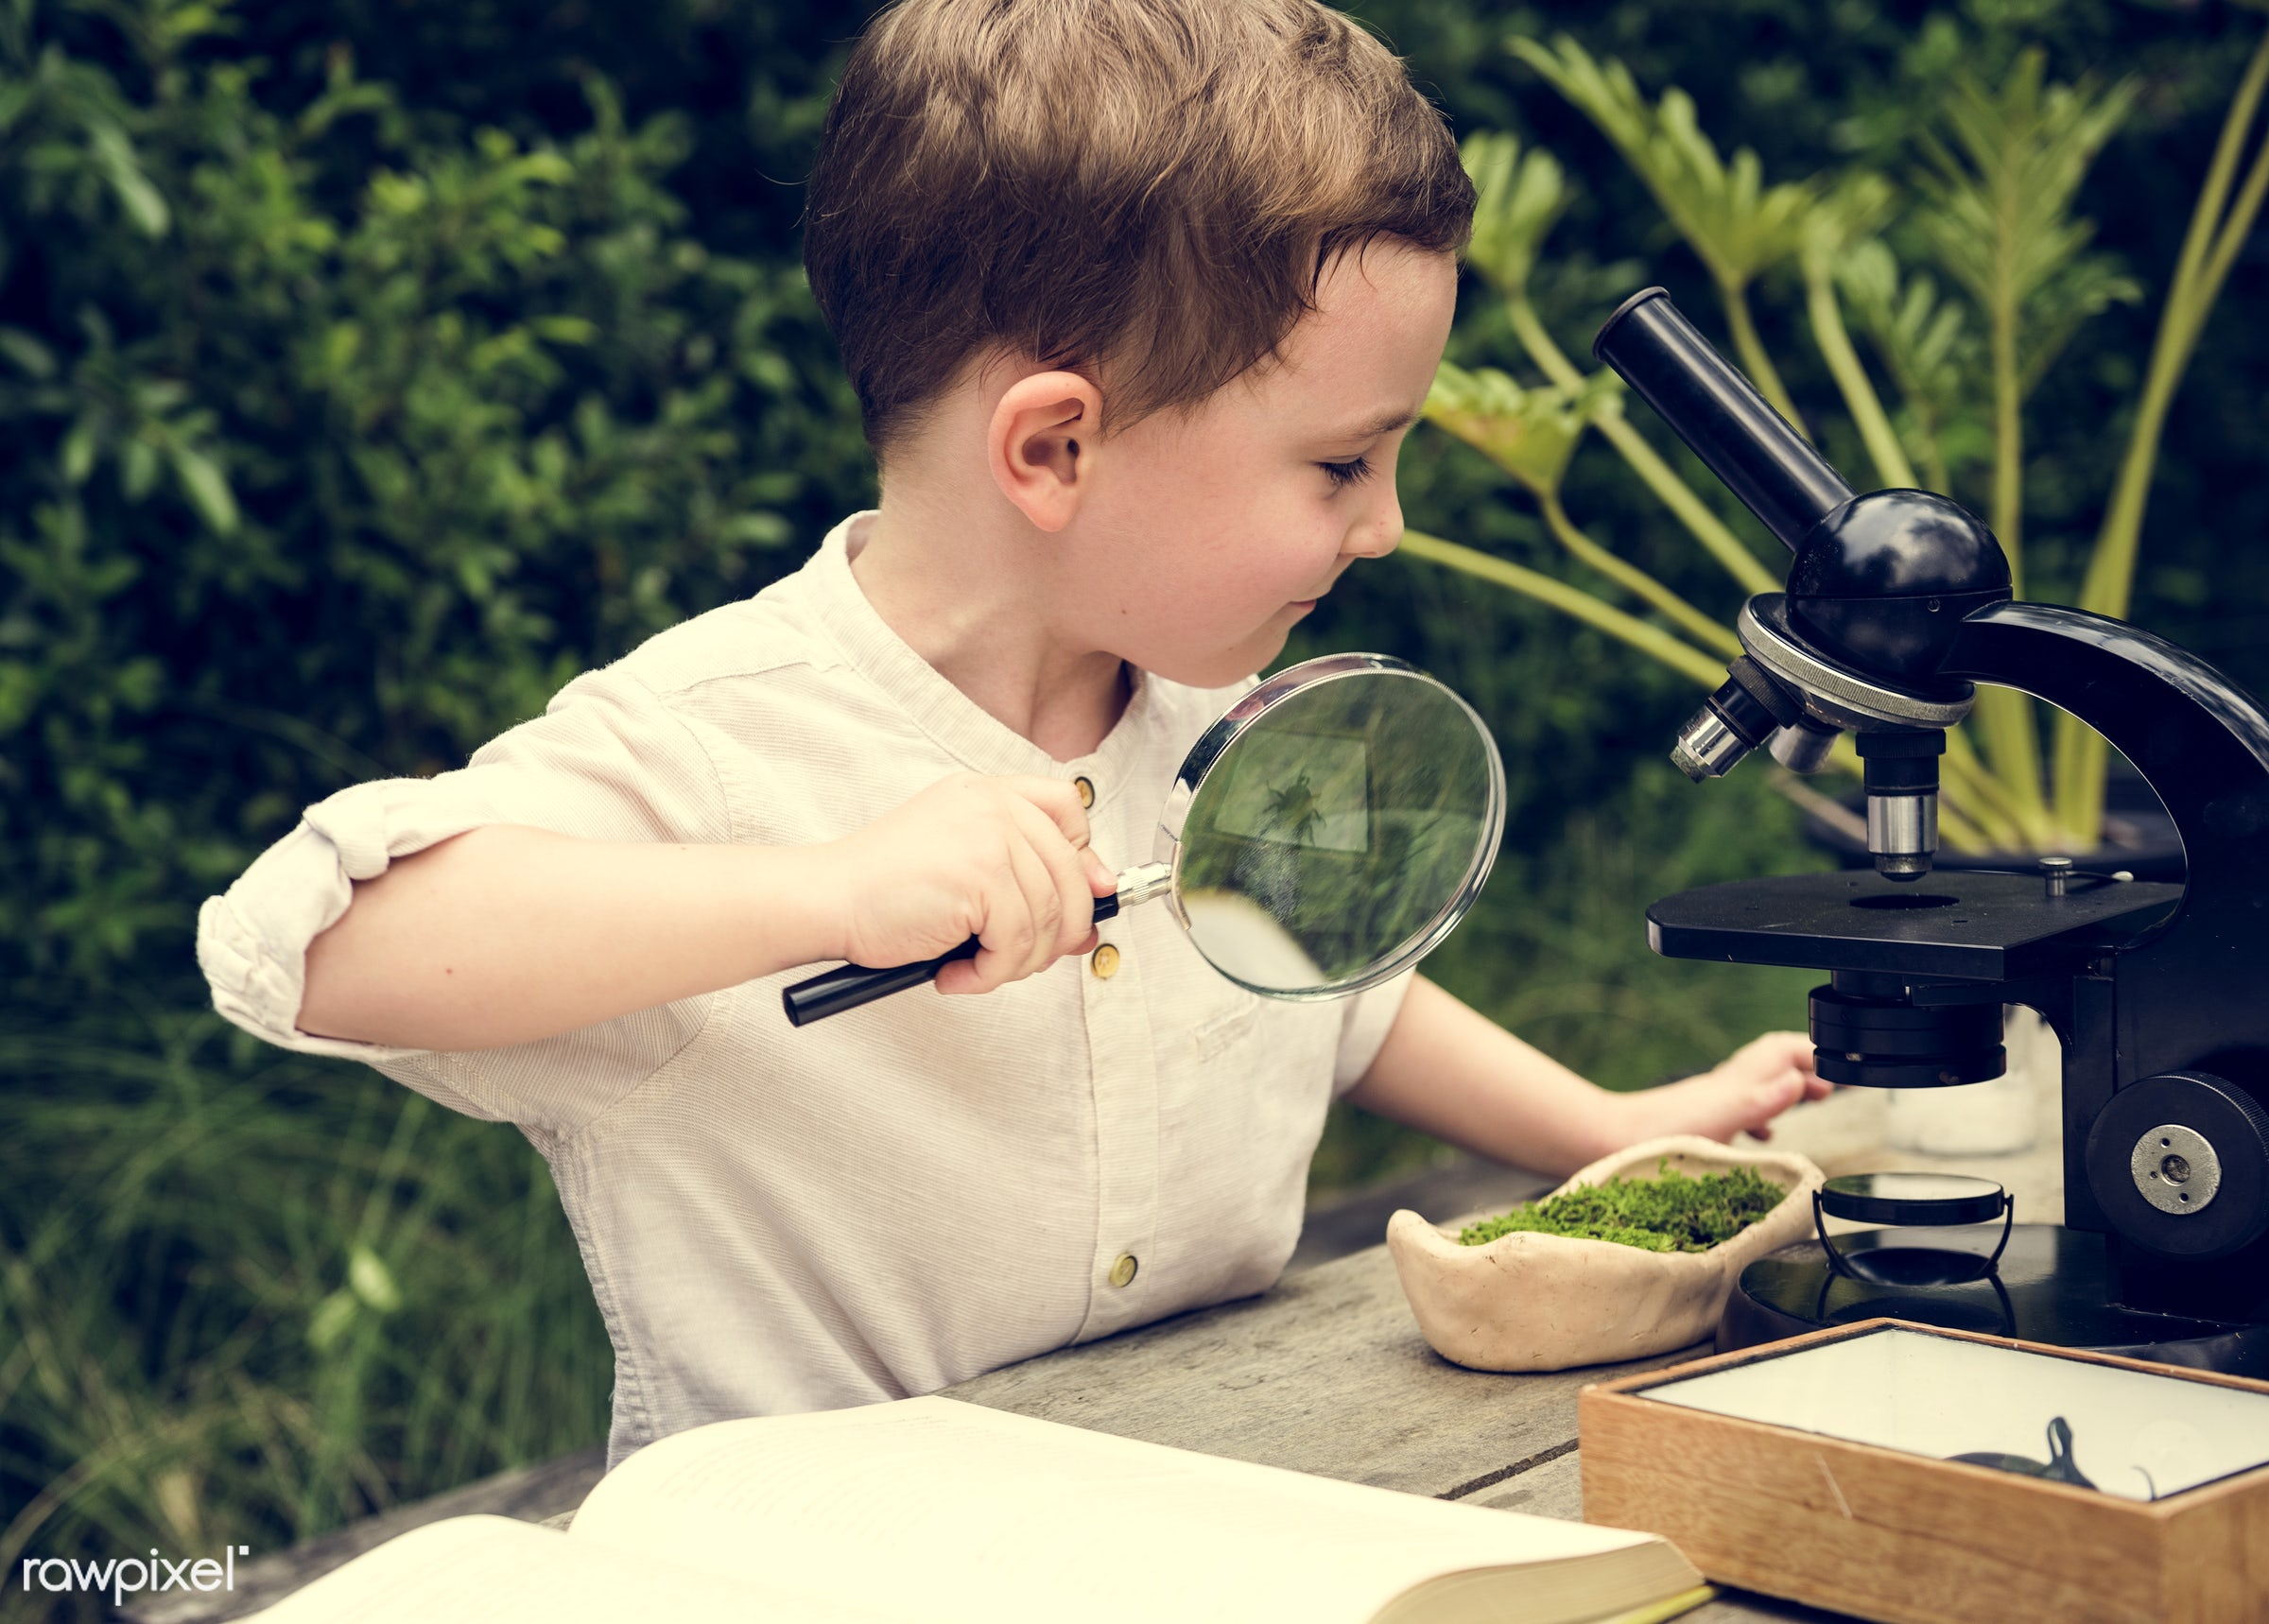 plant, positivity, science, microscope, kid, child, life, micro, lifestyle, experiment, pottery, smile, positive, grandson,...